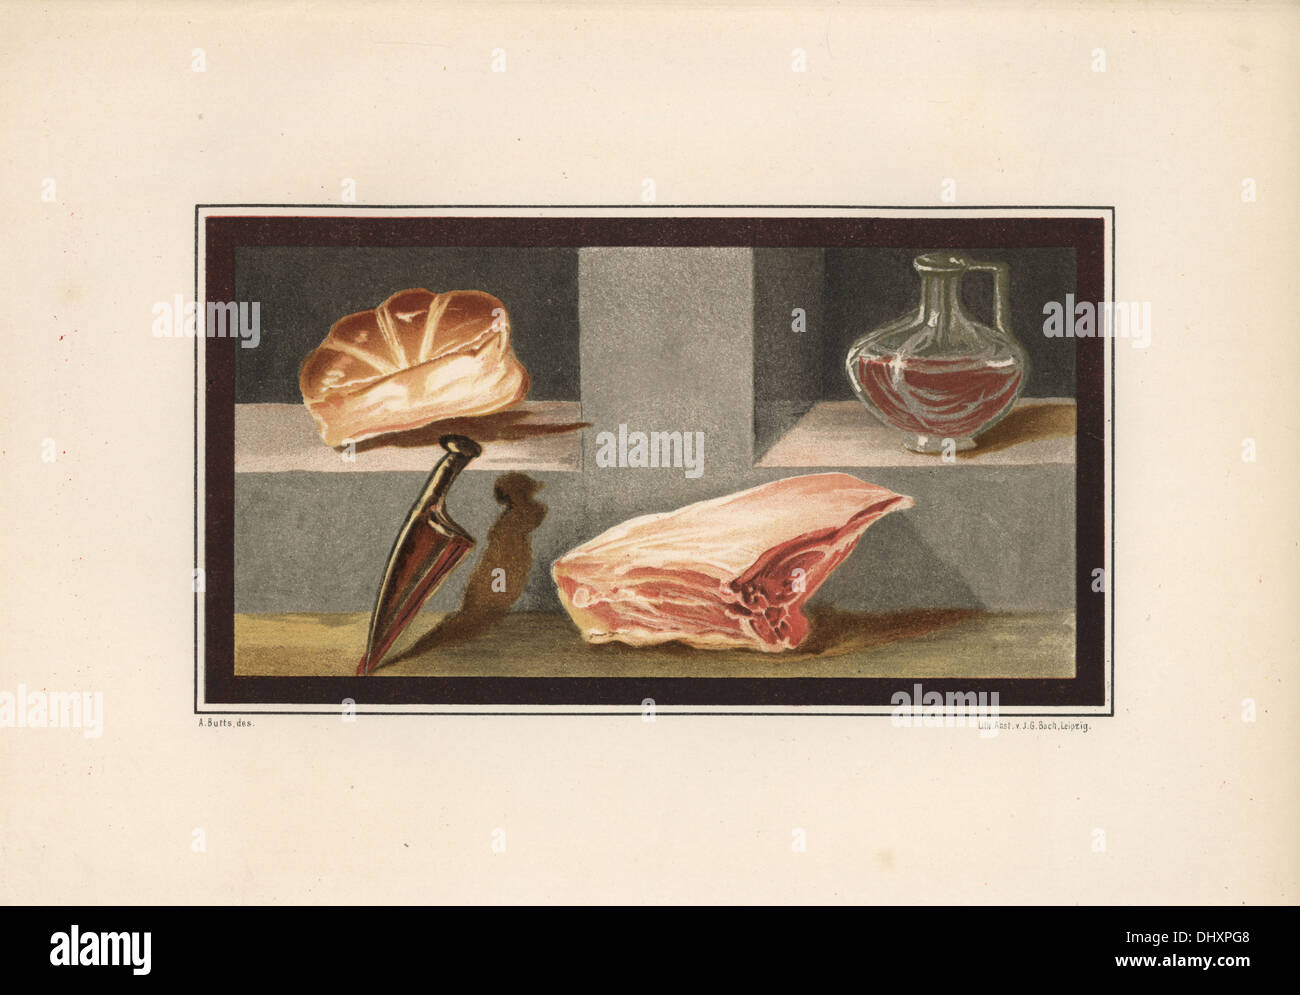 Painting of a still life showing meat, wine, bread and a knife from the ala at house 16, Regio IX, Insula V. - Stock Image